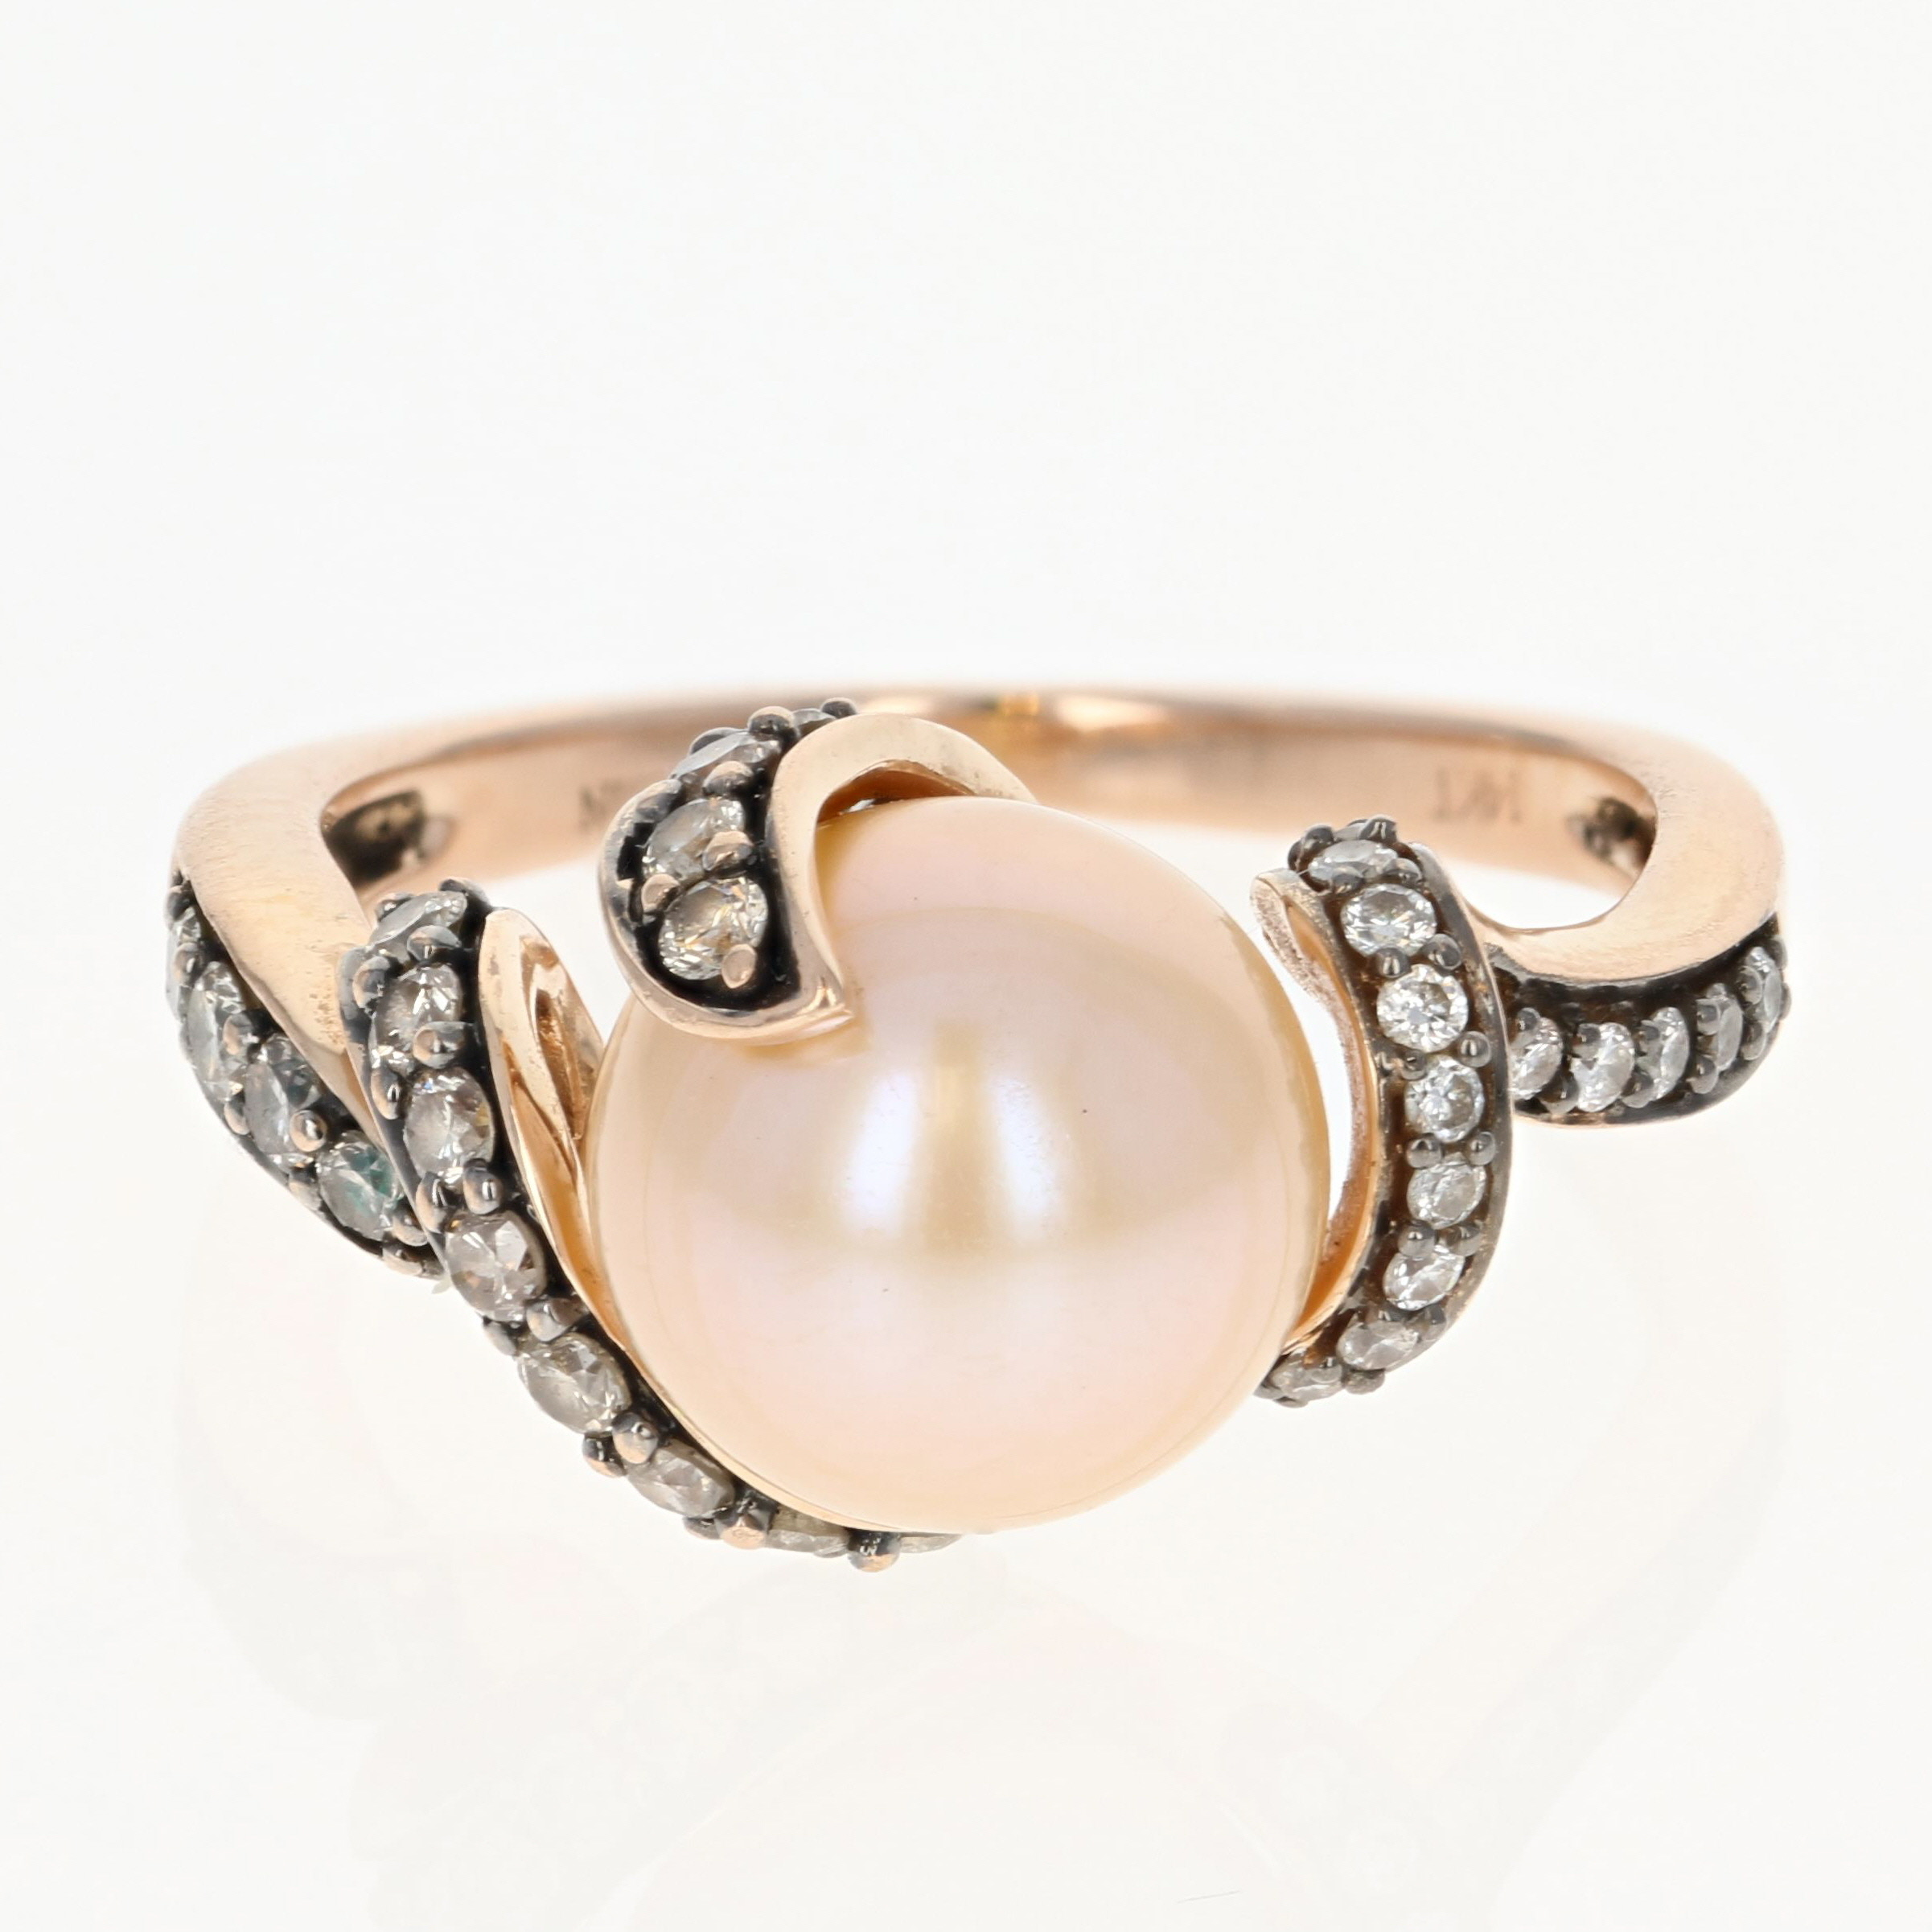 Le Vian Cultured Pearl & Diamond Bypass Ring 14k Rose Gold